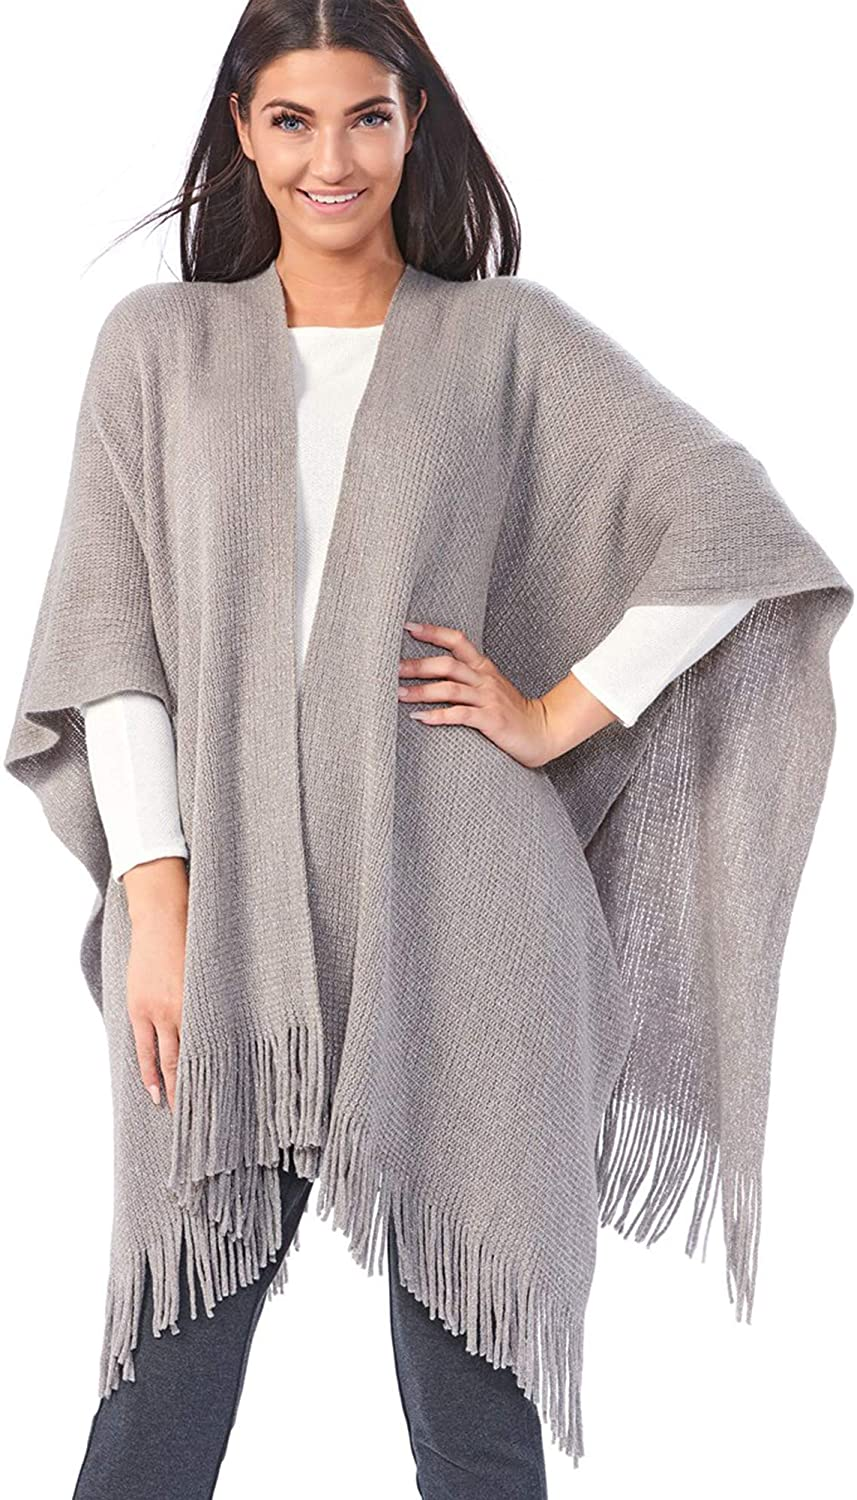 Avenue 9 Open-Front Cape with Fringes - Grey Poncho Style Cape for Women